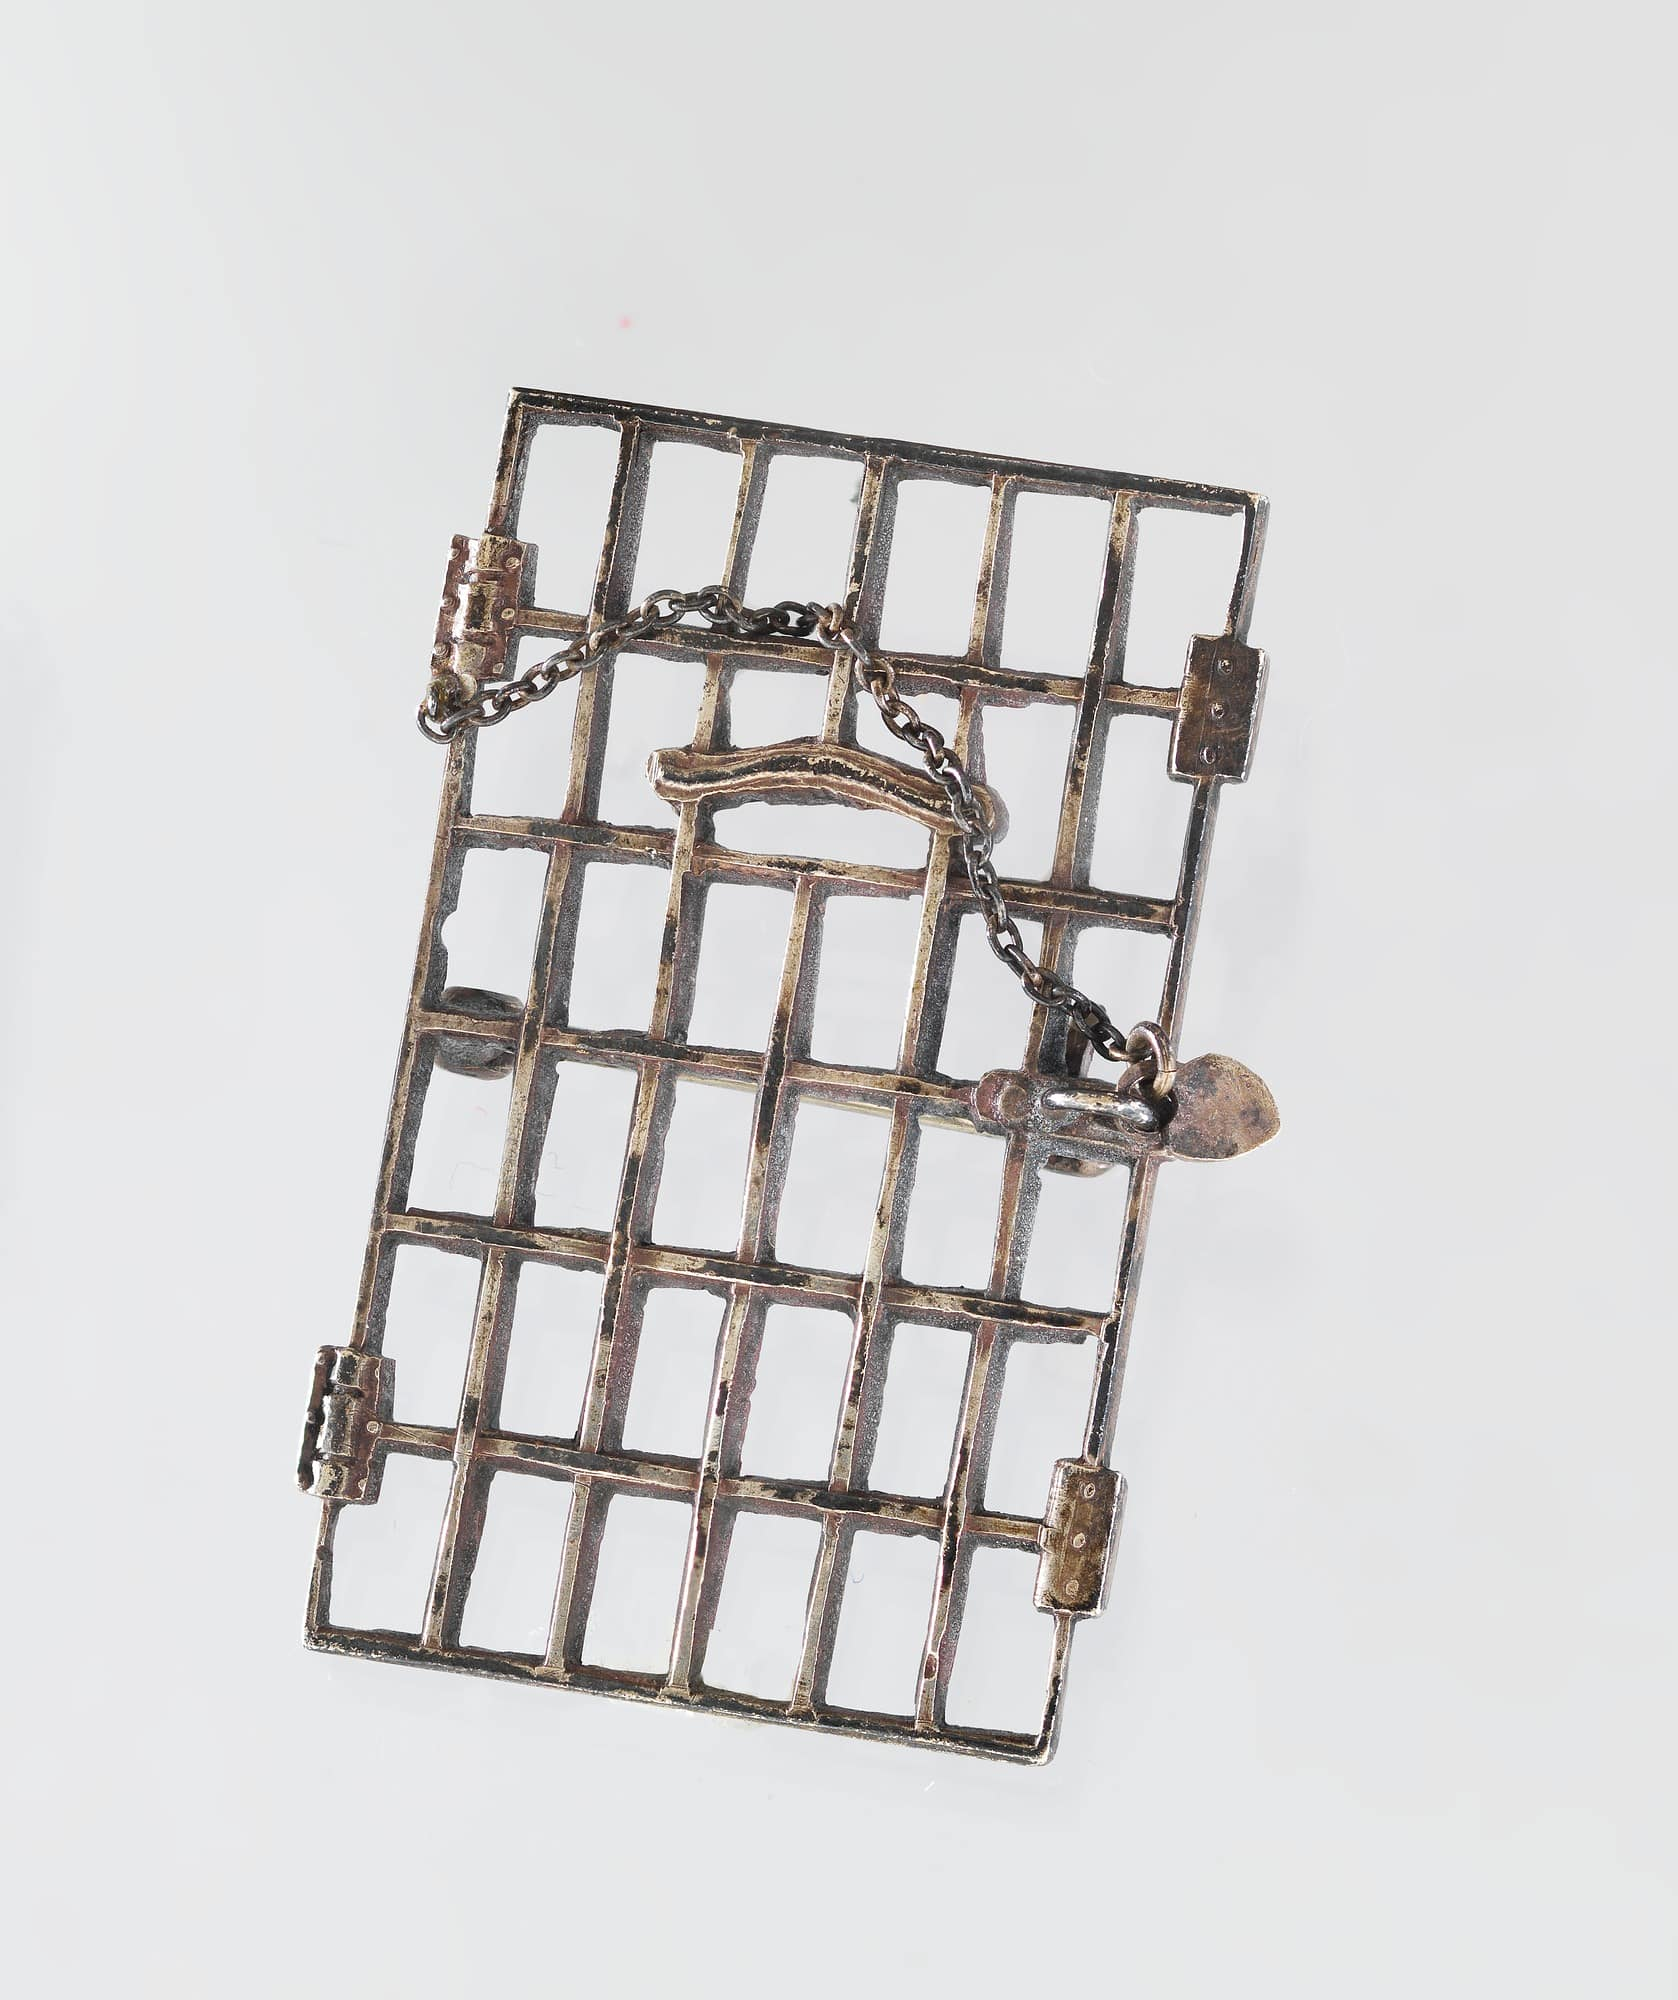 Jailed for Freedom Pin Awarded to Lucille Angiel Calmes After Serving Jail Time in the District of Columbia for Her Part in the Watch Fire Demonstration.